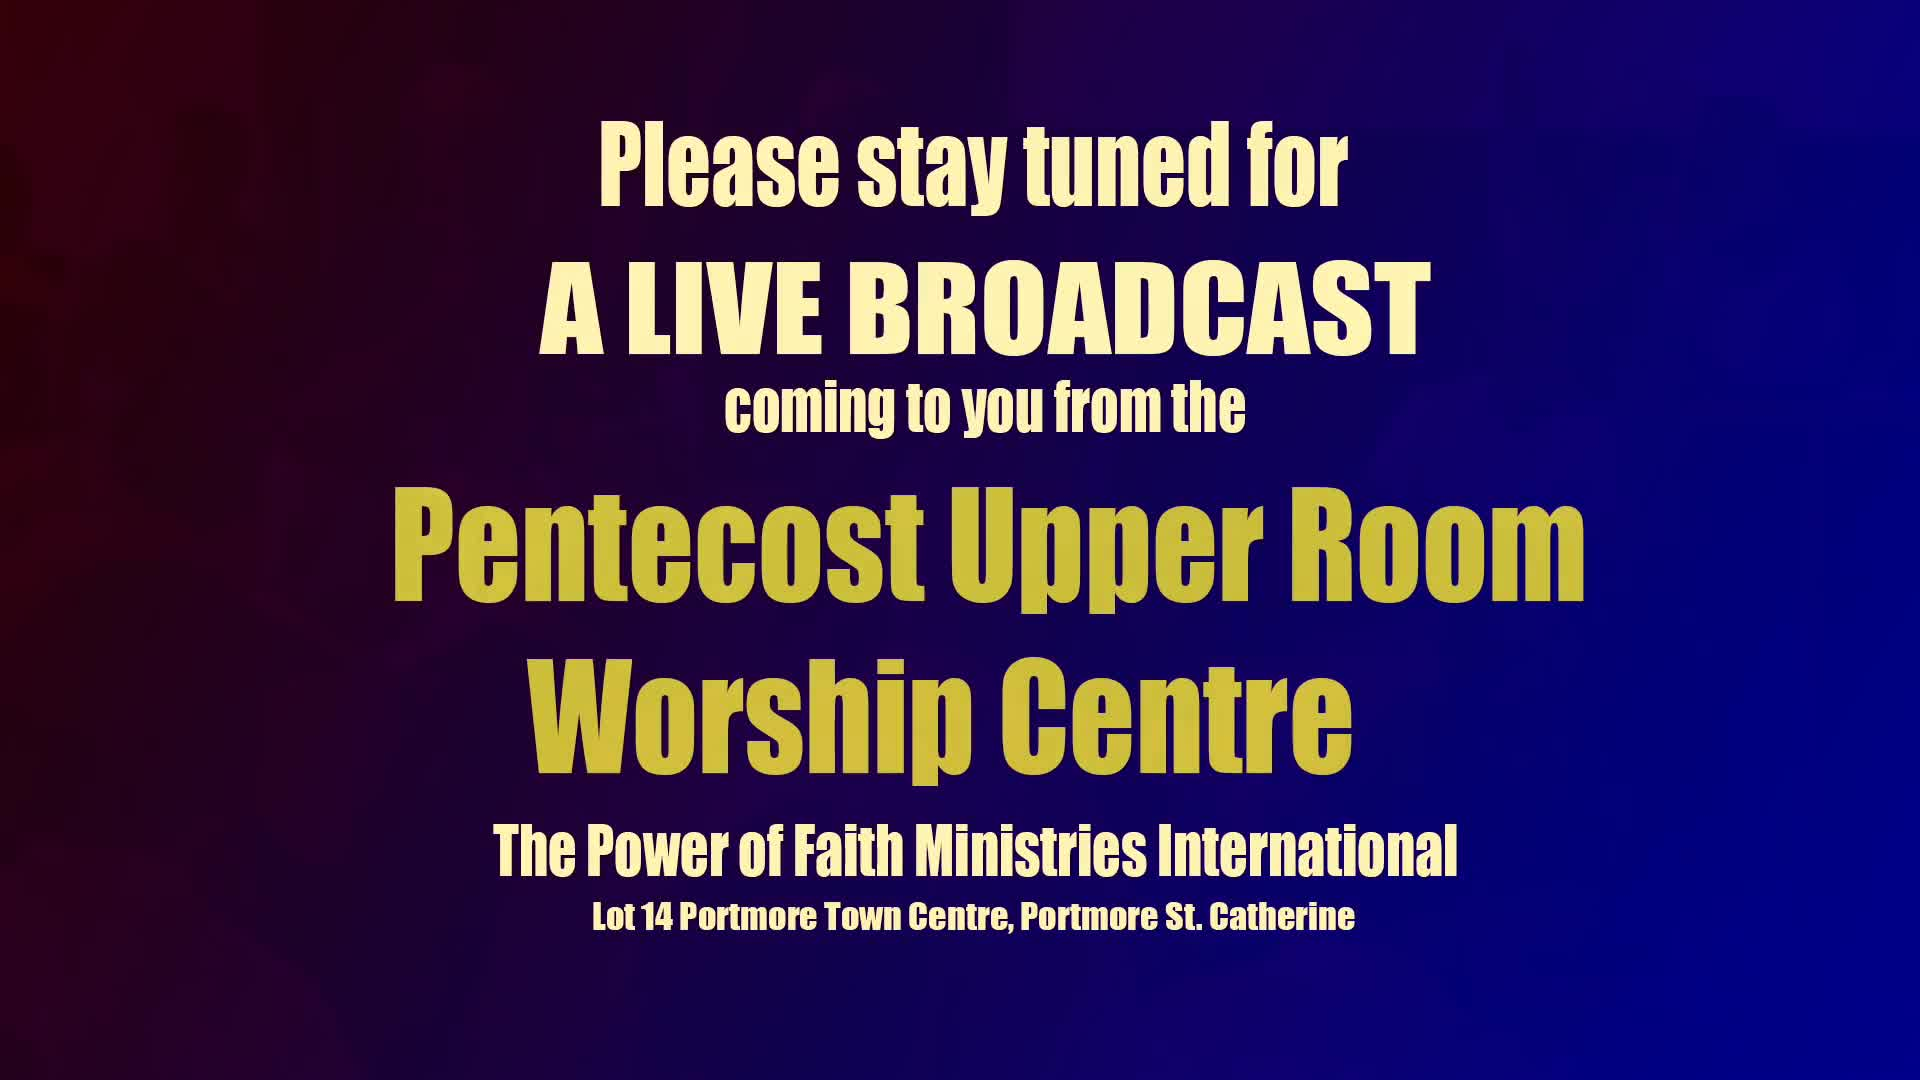 Pentecost Upper Room Worship Centre  52619